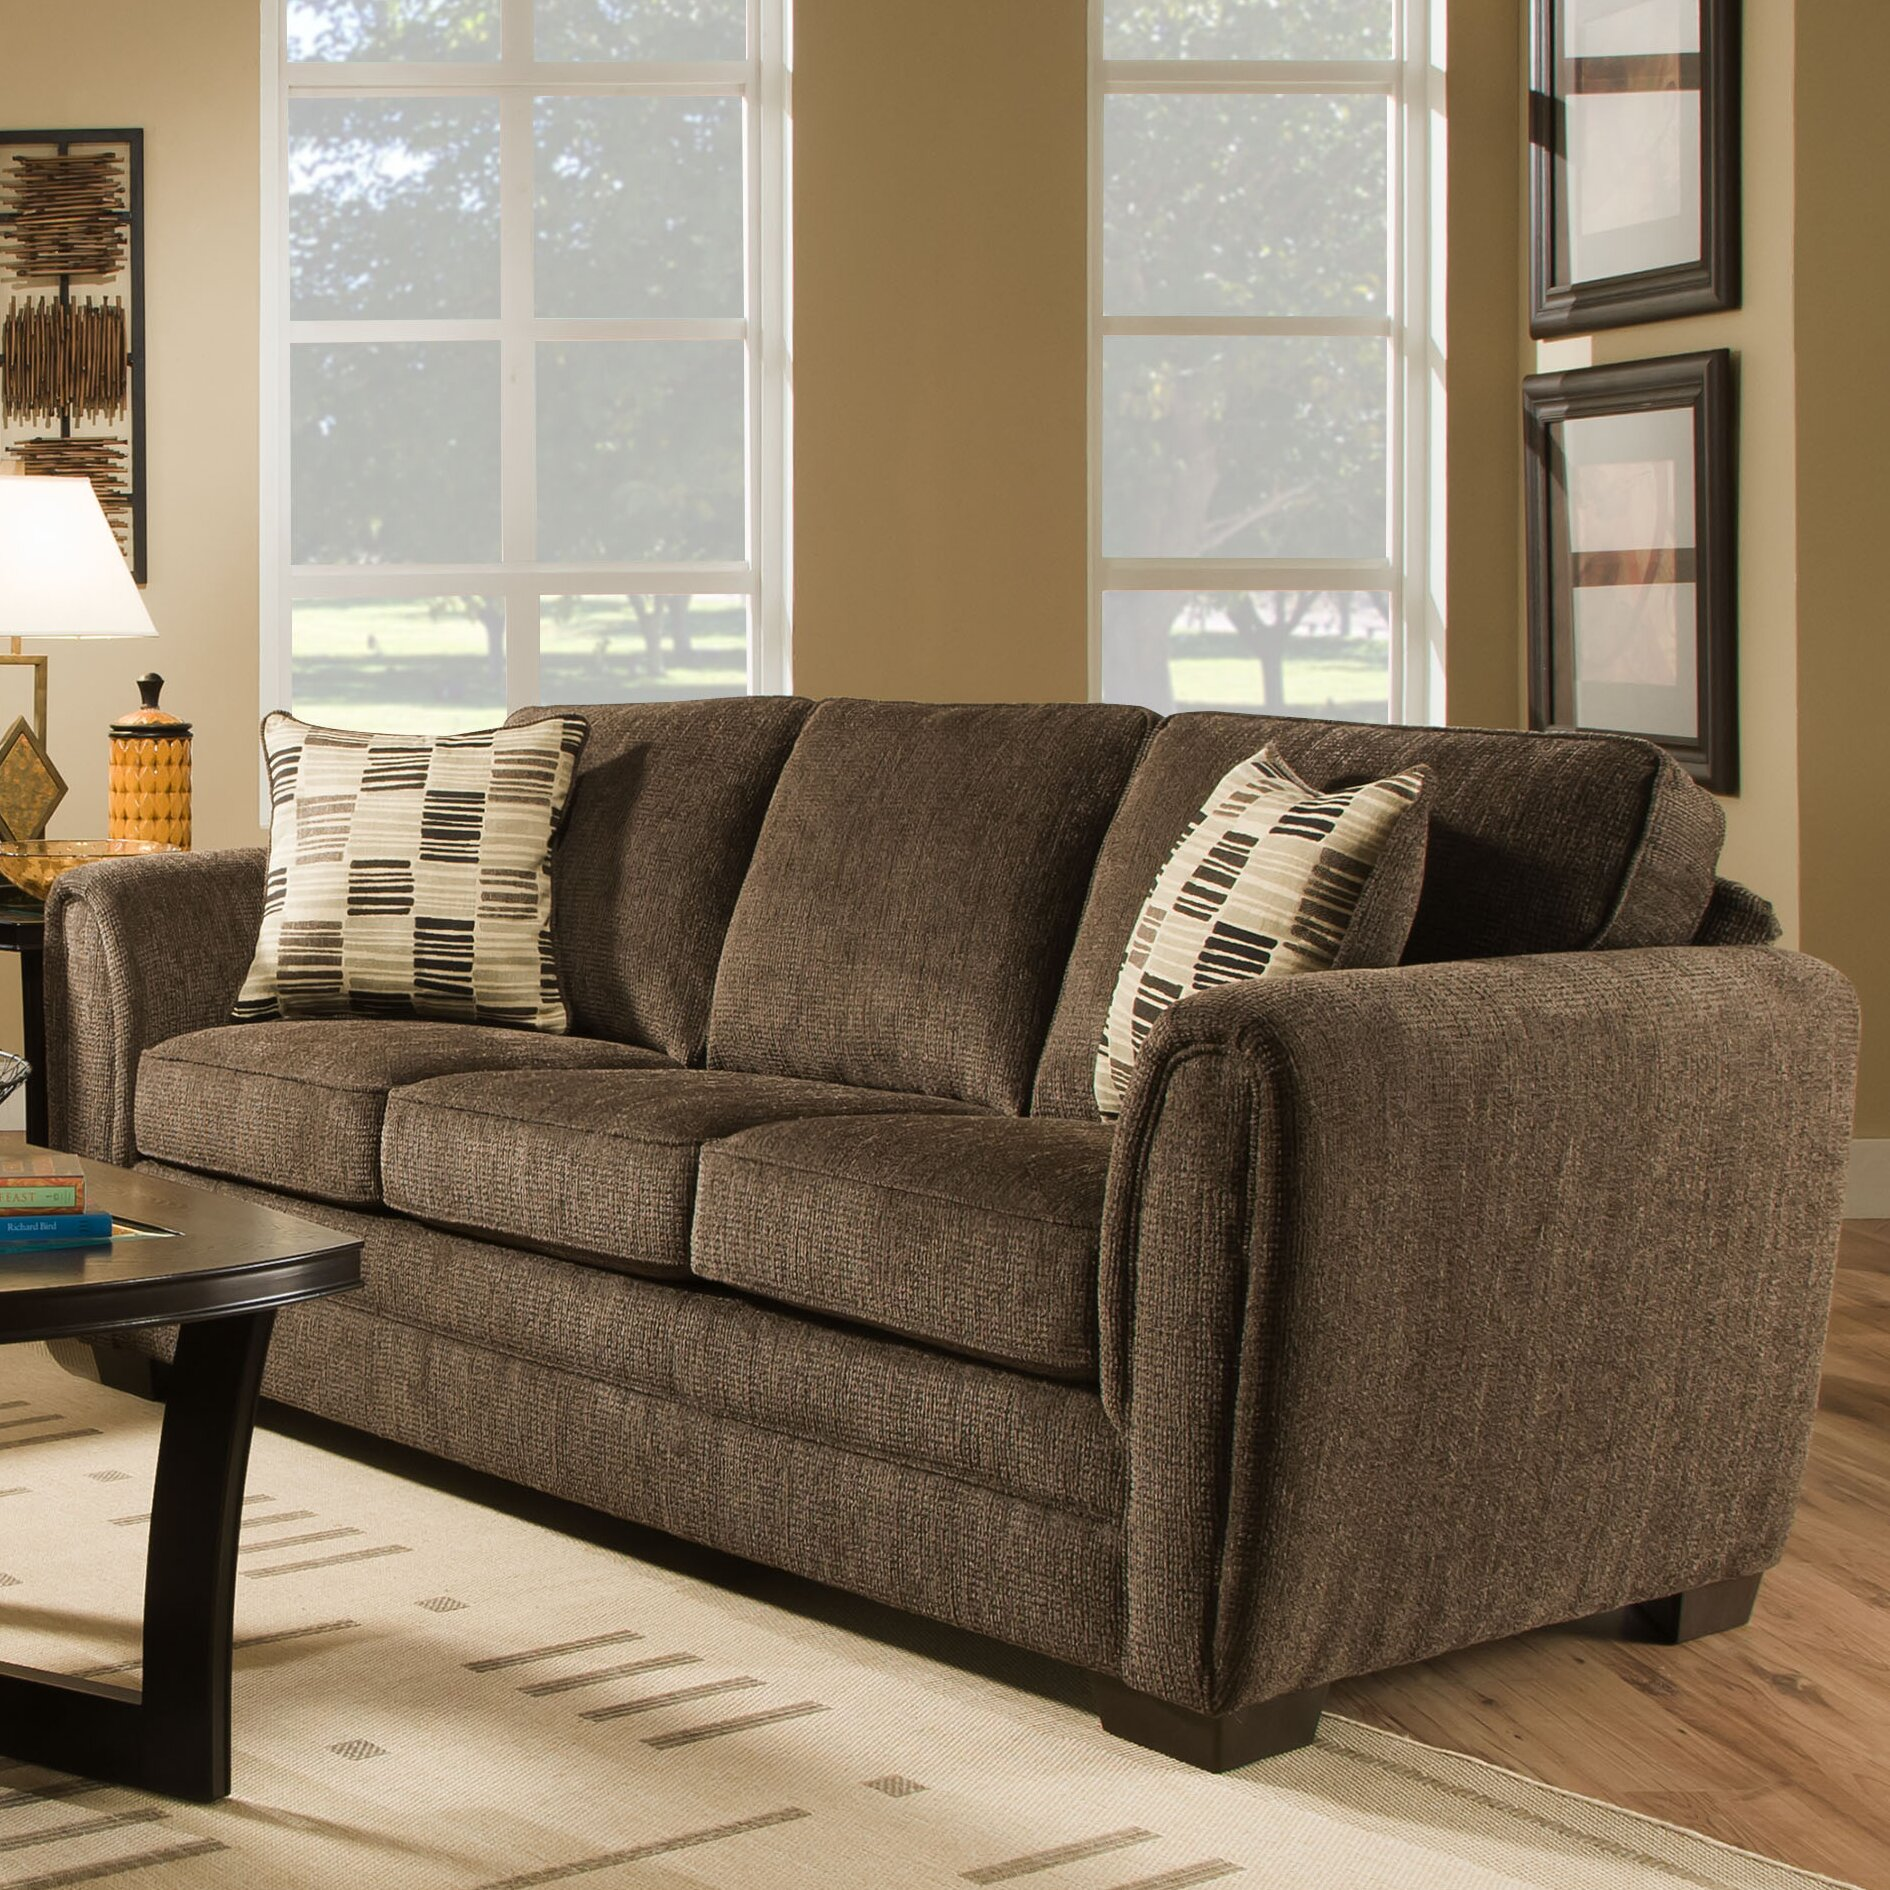 Simmons Upholstery Lucas Living Room Collection Reviews Wayfair